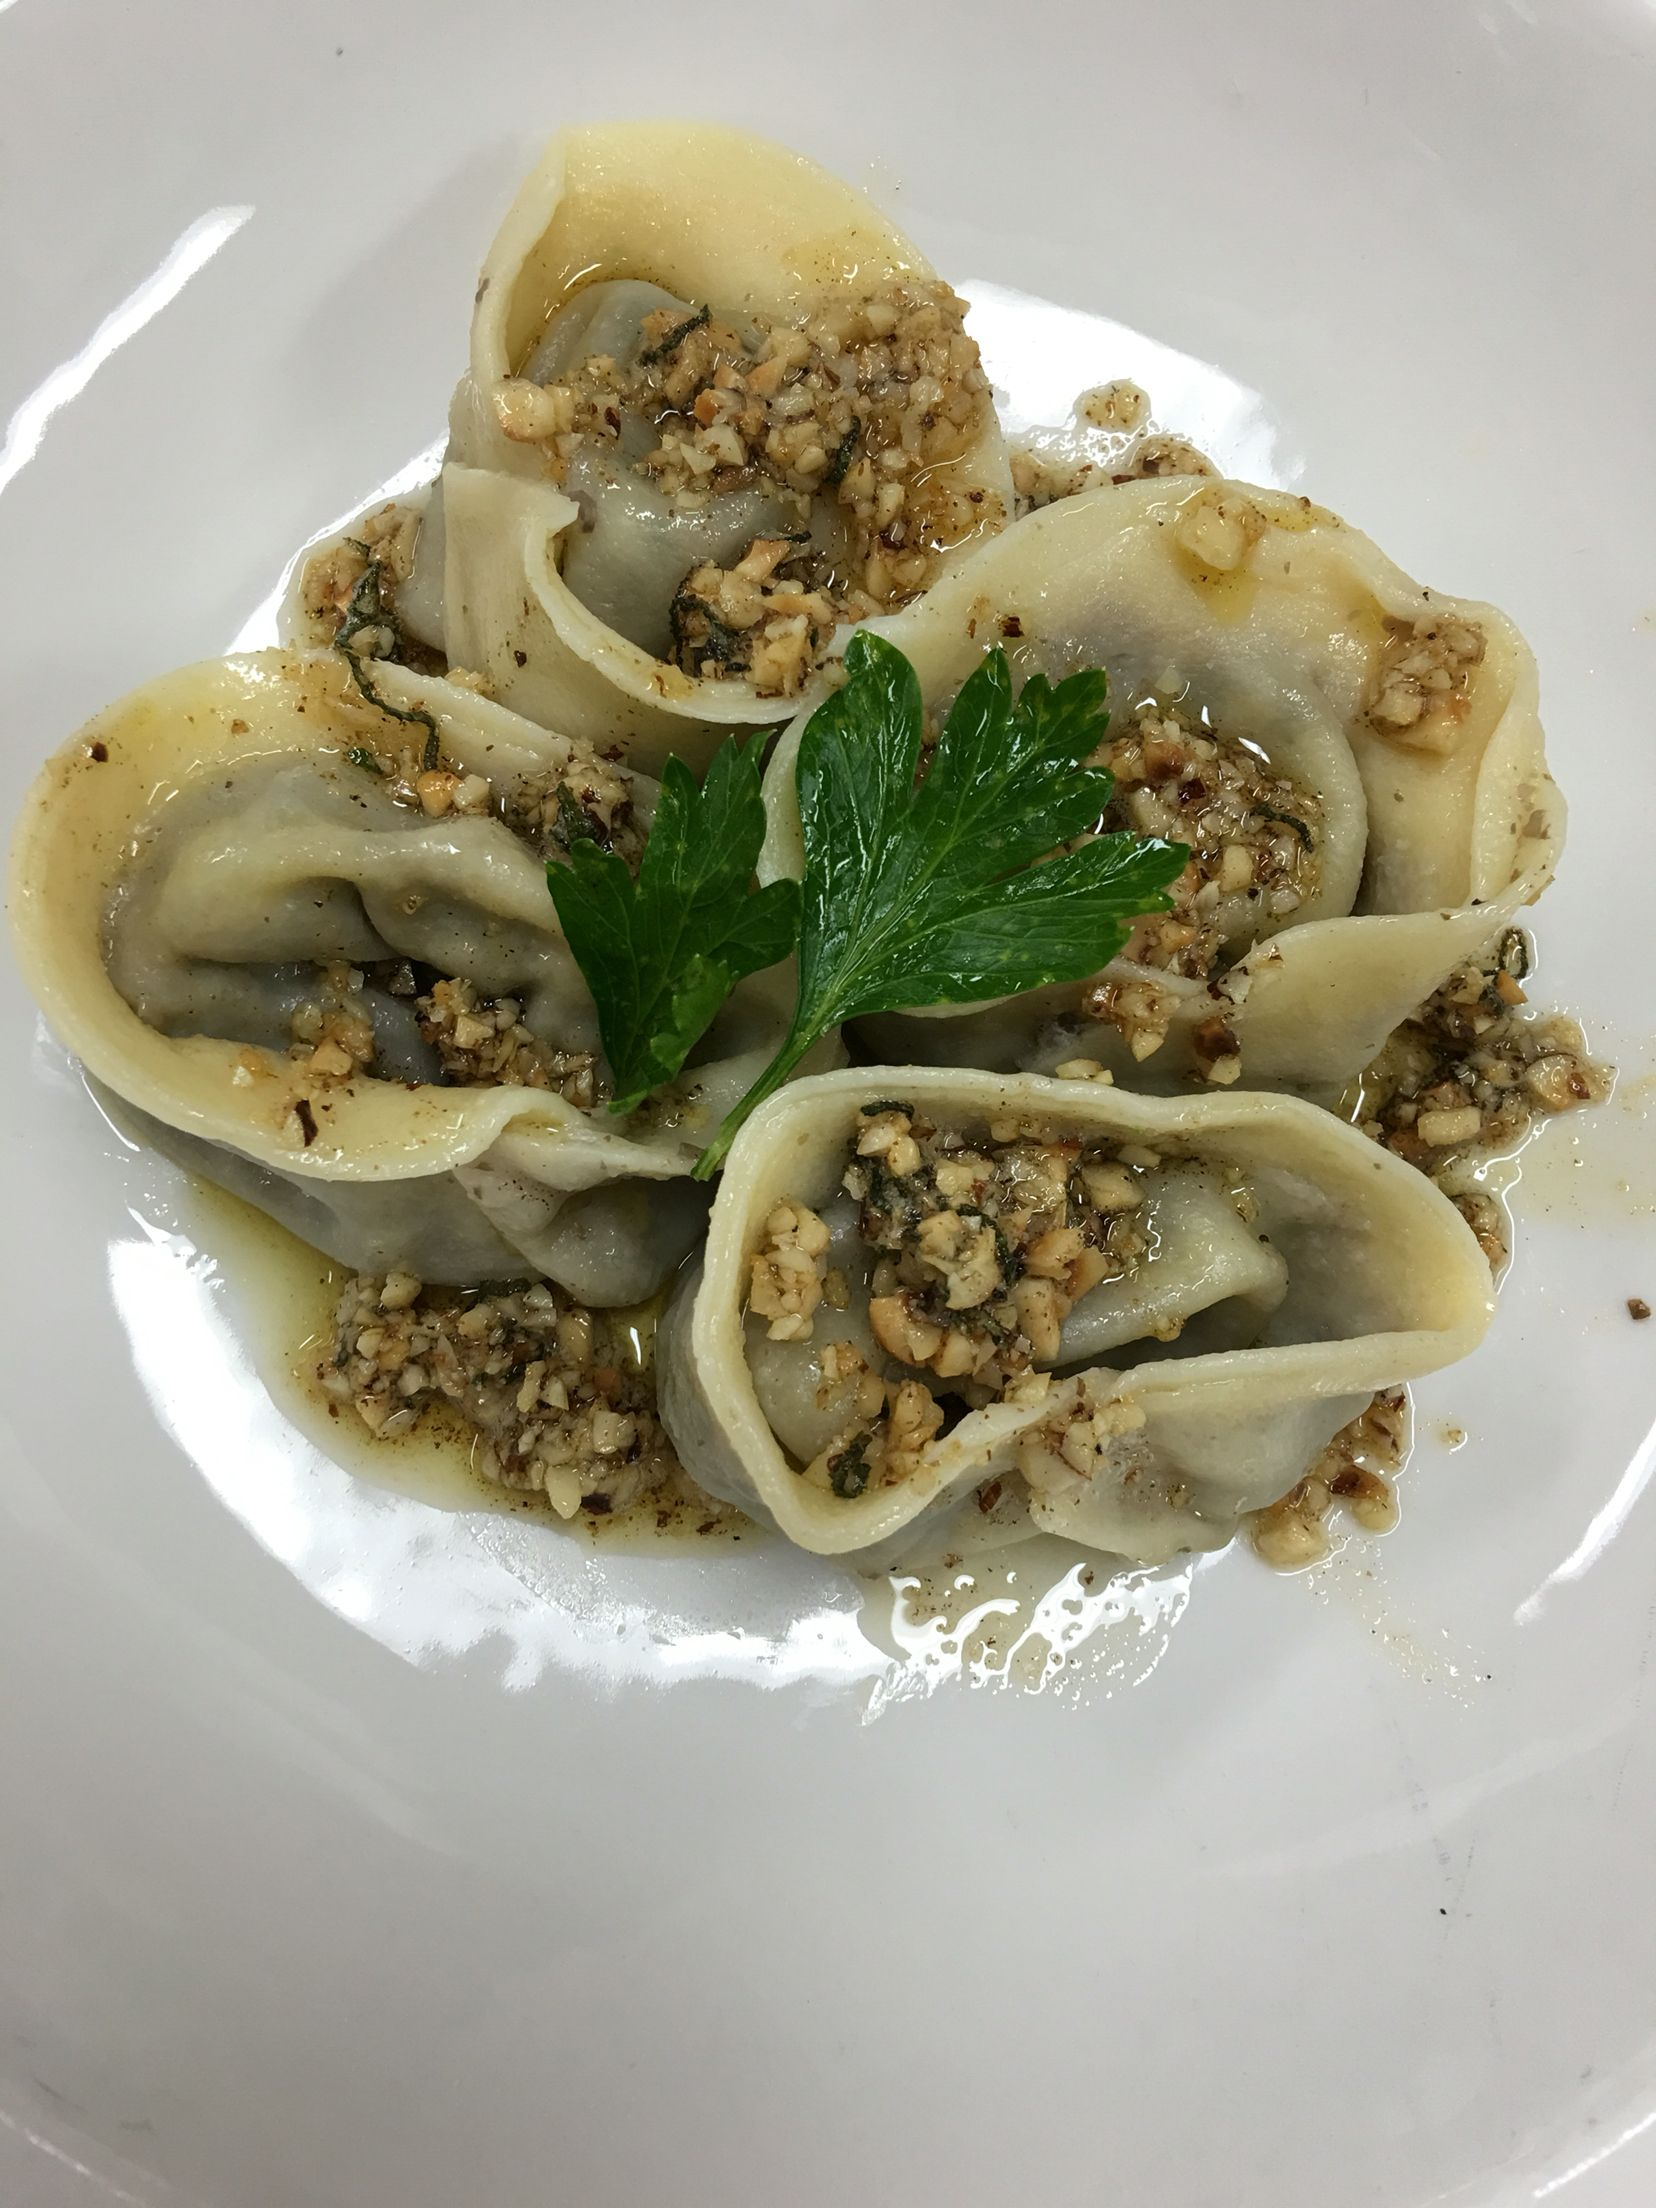 Tortellini filled with mushroom duxelles and blue cheese and drizzled with butter sauce